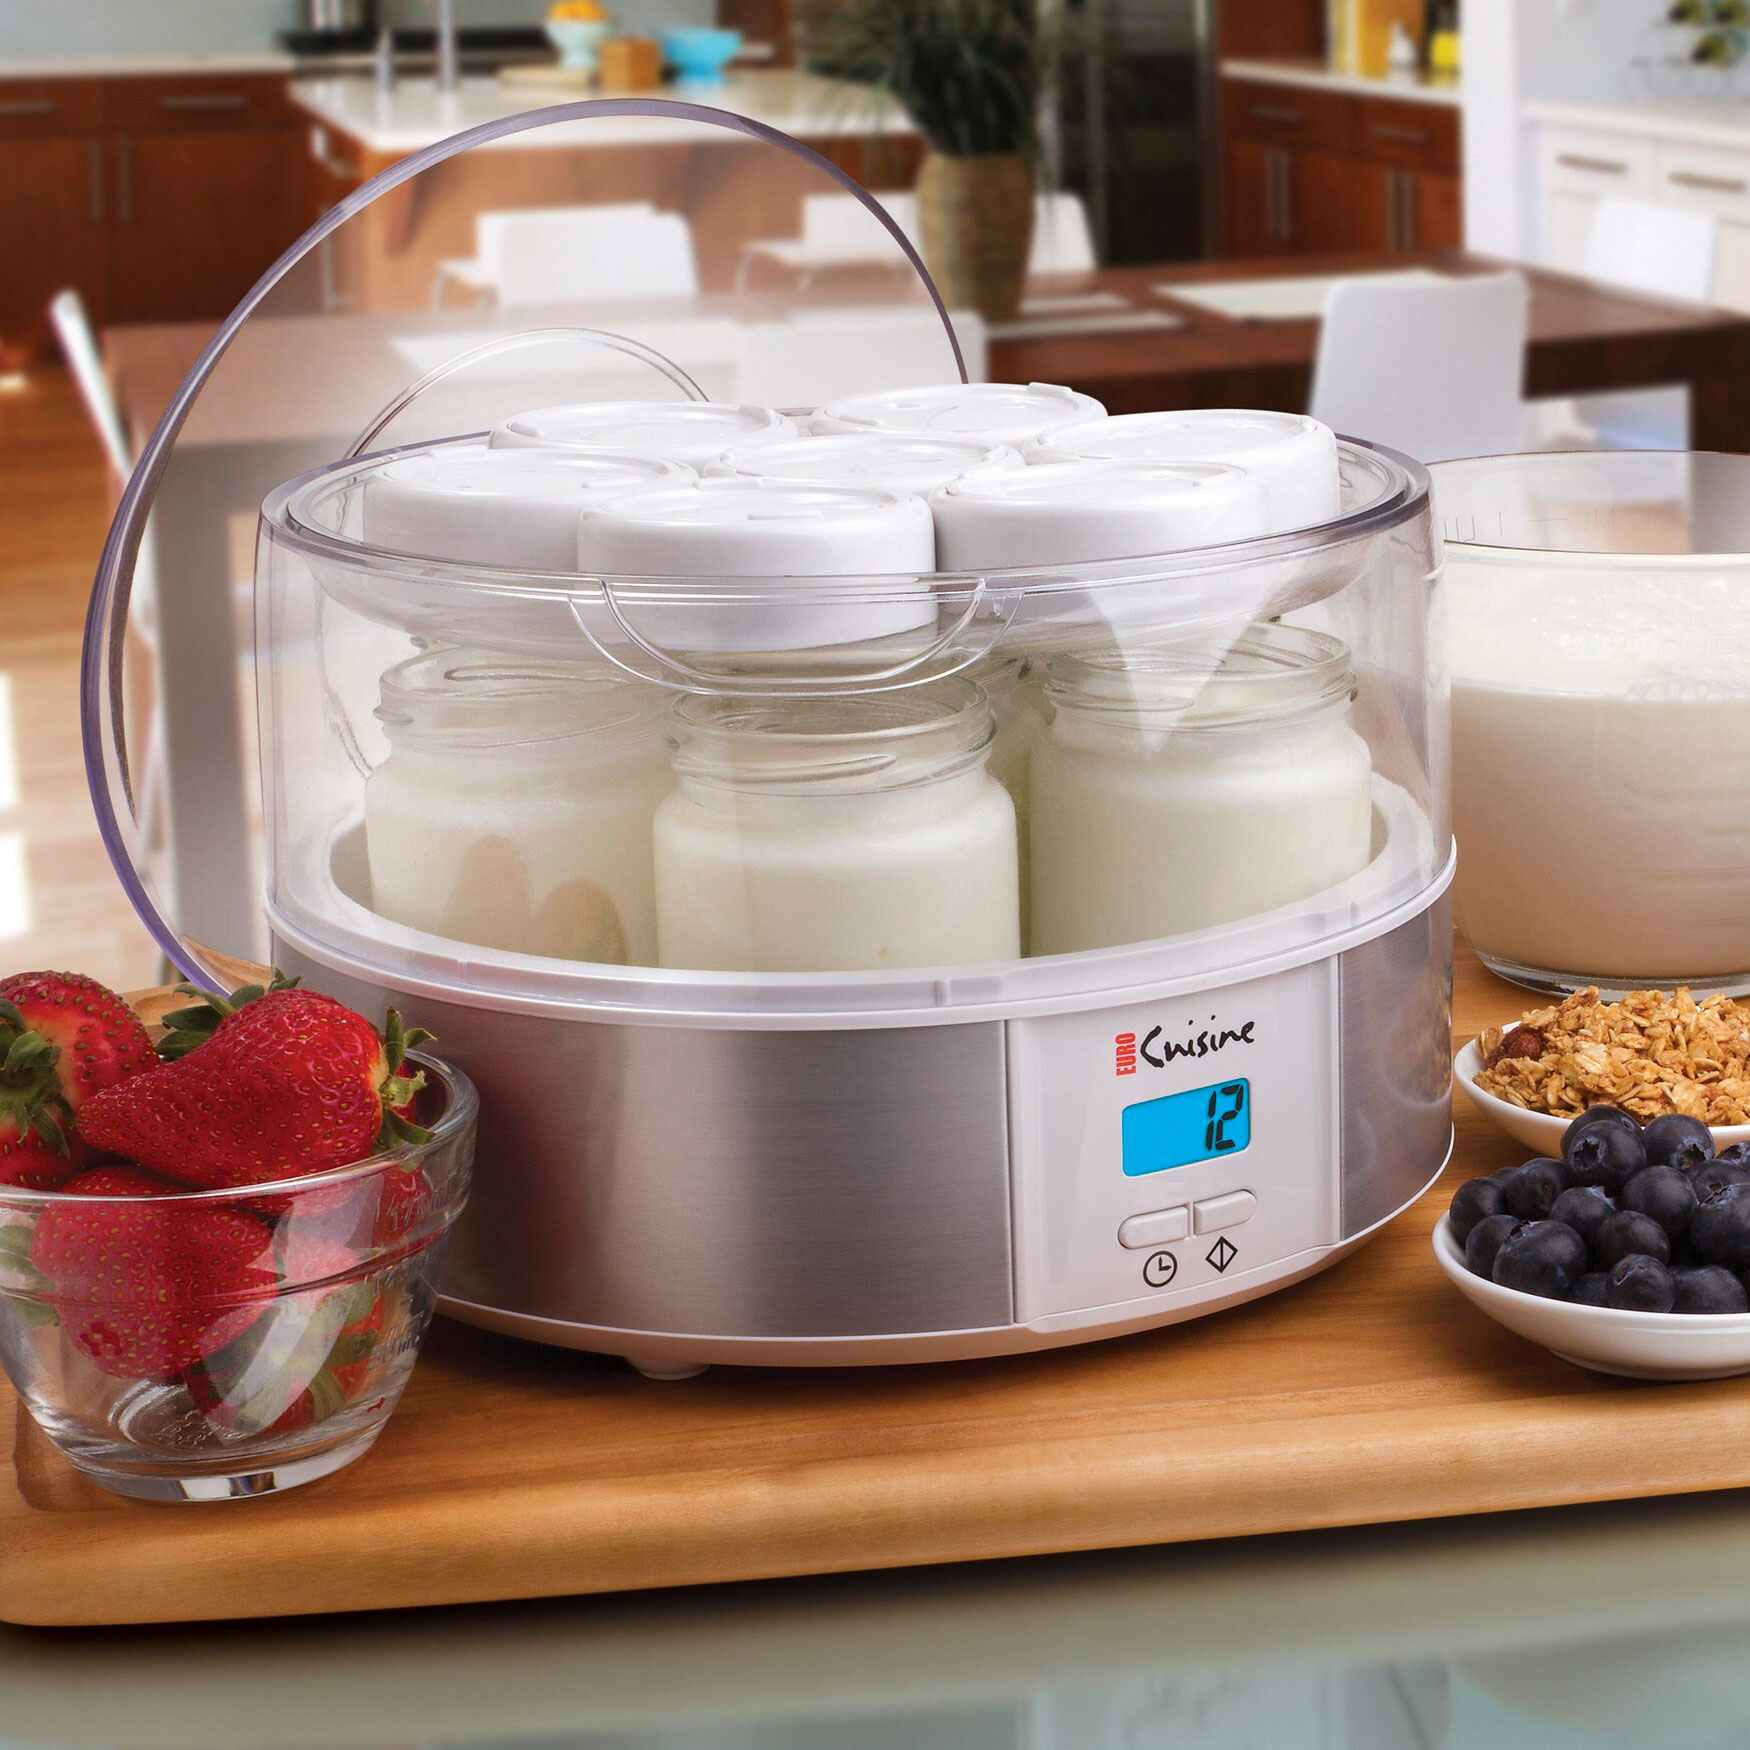 Euro Cuisine Electric Digital Automatic Yogurt Maker with 7 Glass Jars, WHITE